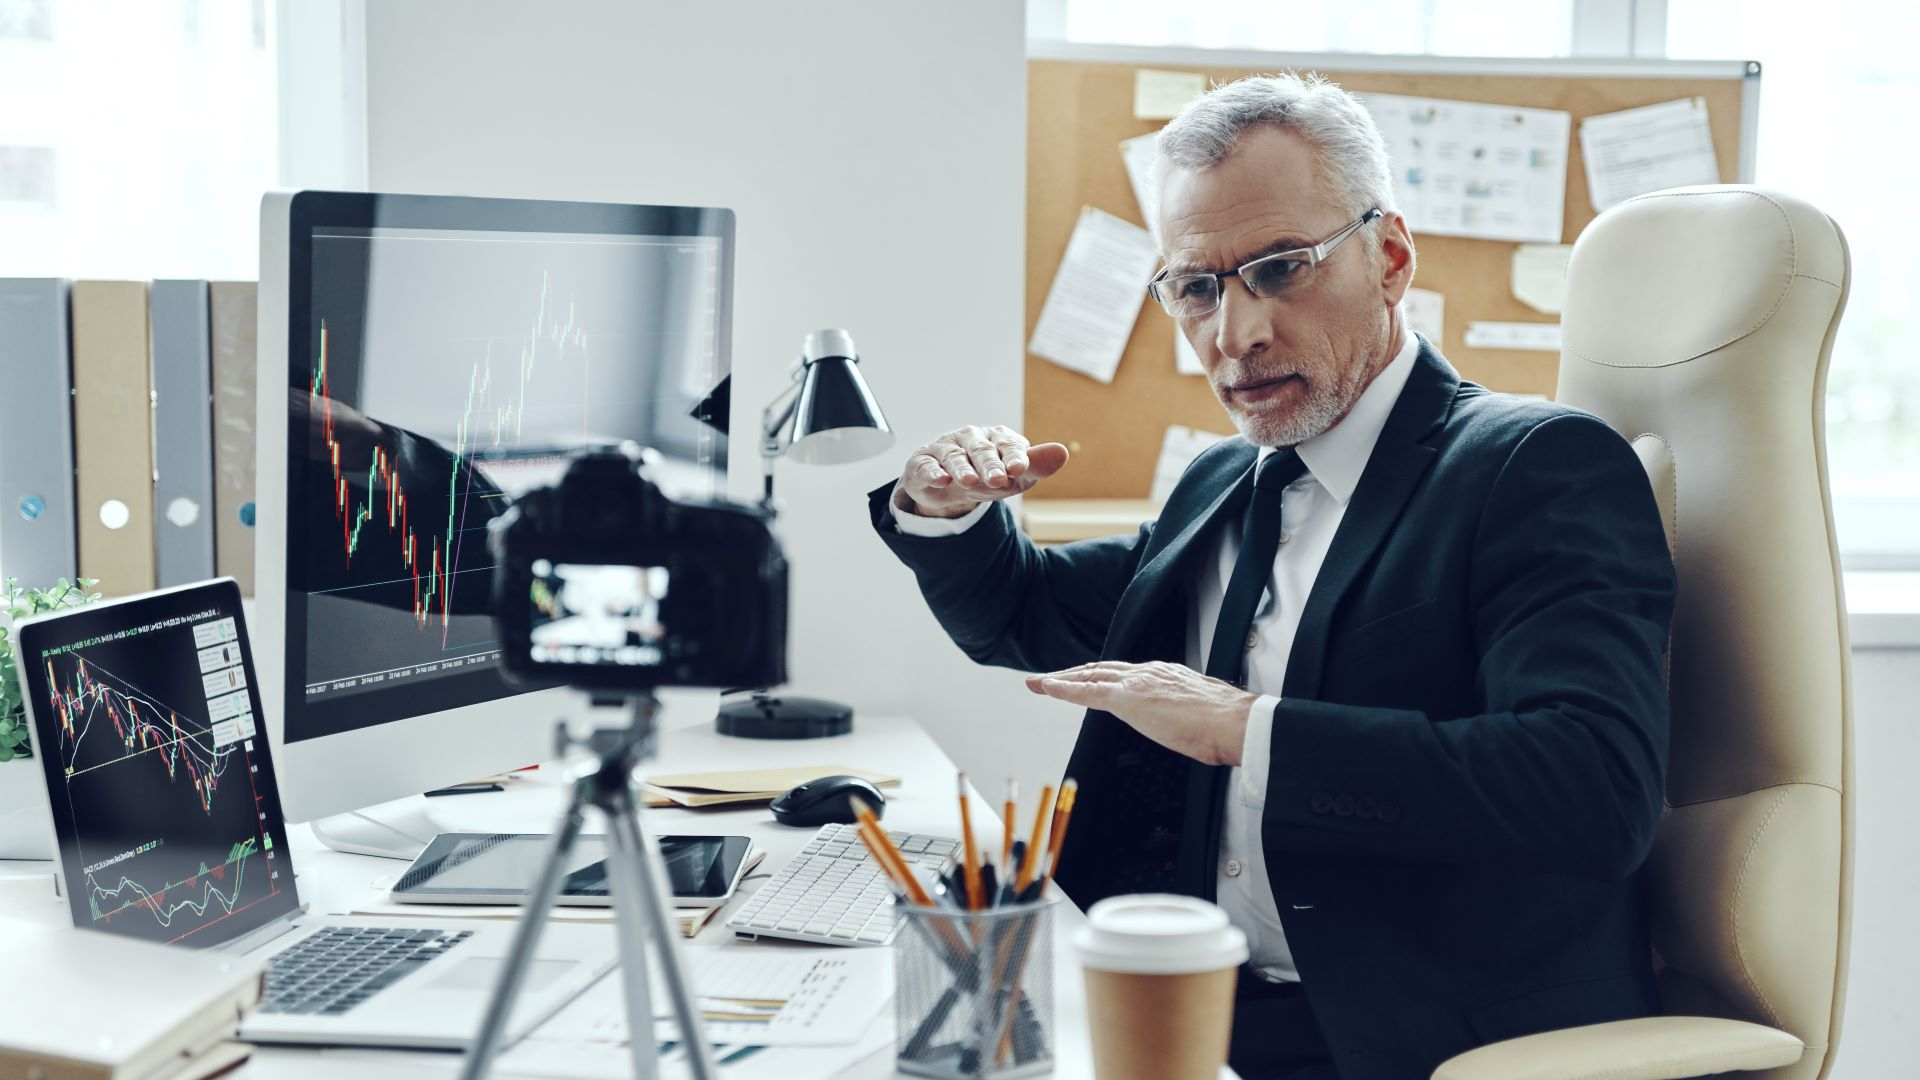 Businessman filming a killer corporate video in his office